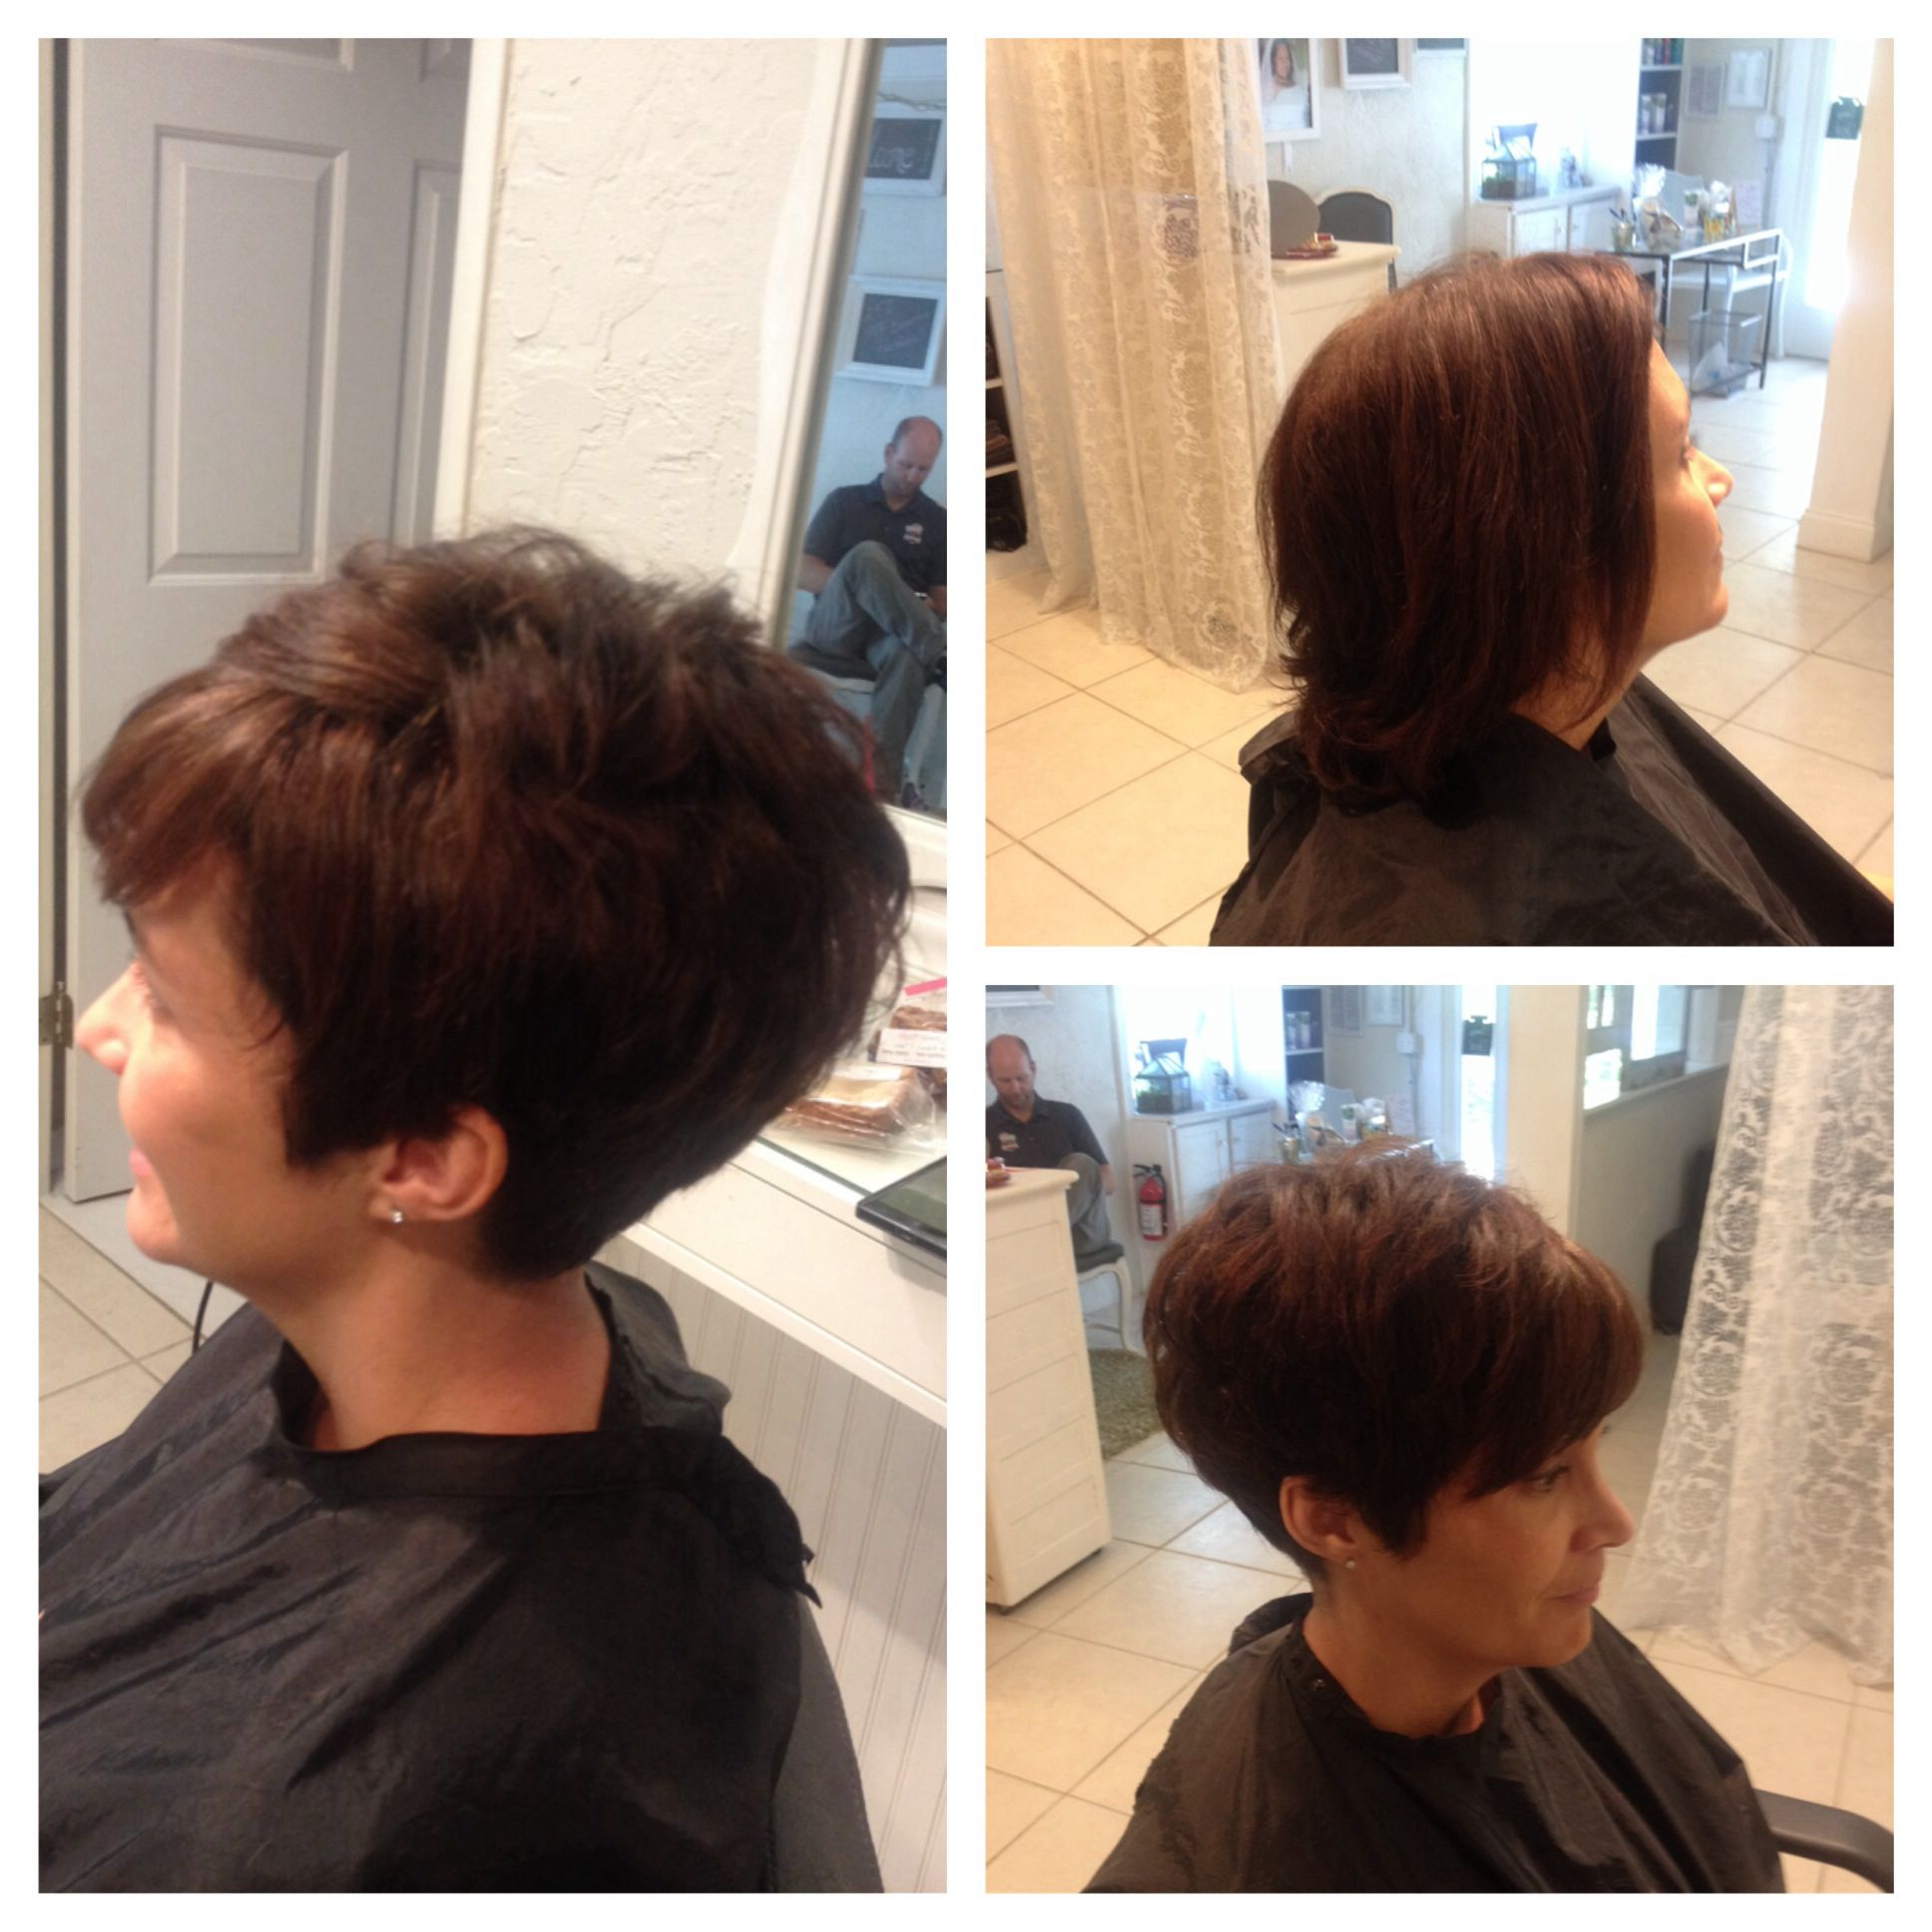 Cute Short Hair Make Overperfect Cut For Thick, Coarse Hair Intended For Short Haircuts For Coarse Gray Hair (View 10 of 25)